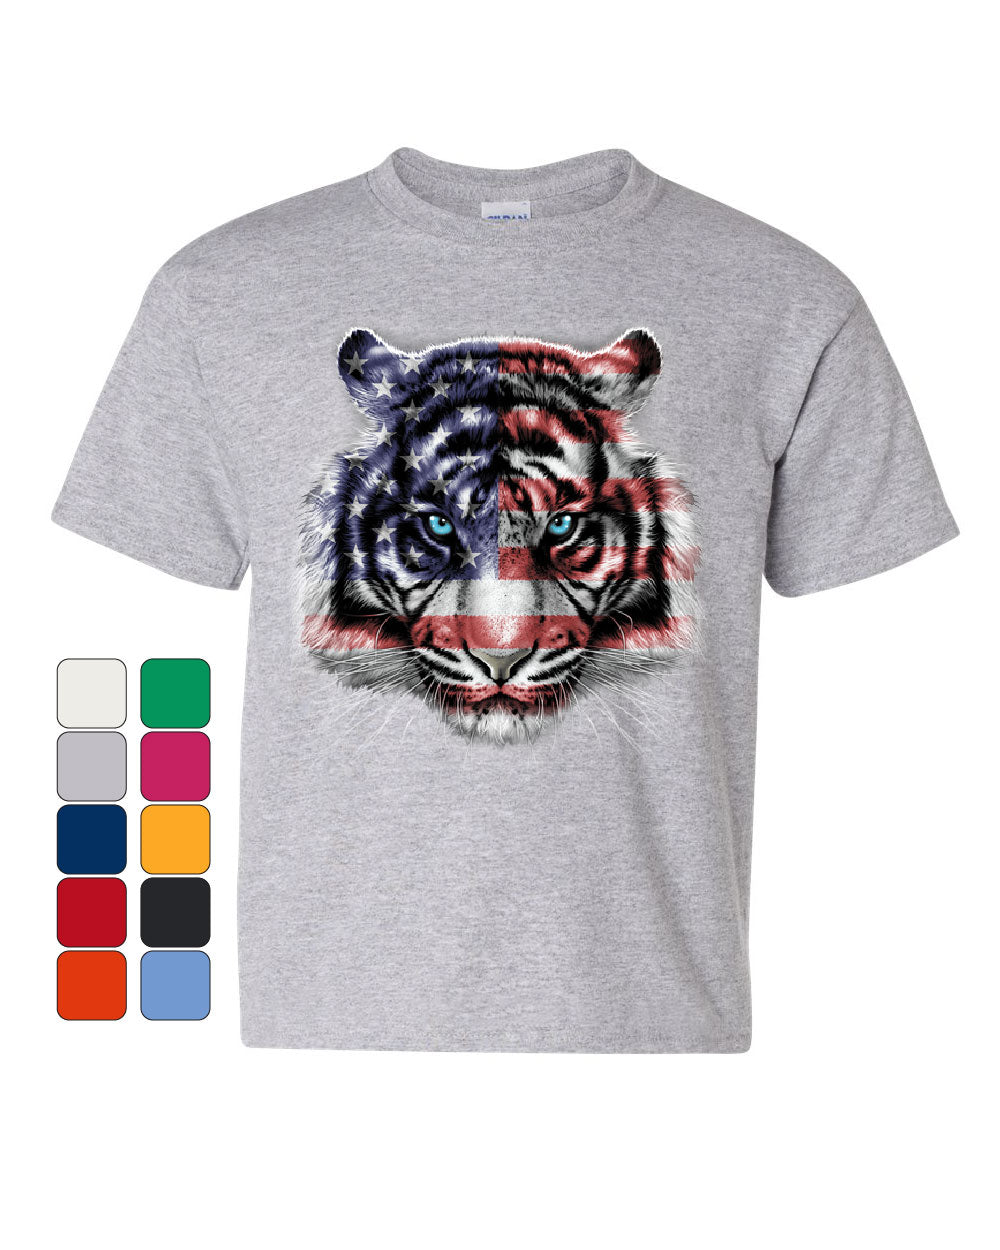 fecccf3a9cbeb Details about American White Tiger Youth T-Shirt Stars and Stripes Wild Cat  Nature Kids Tee